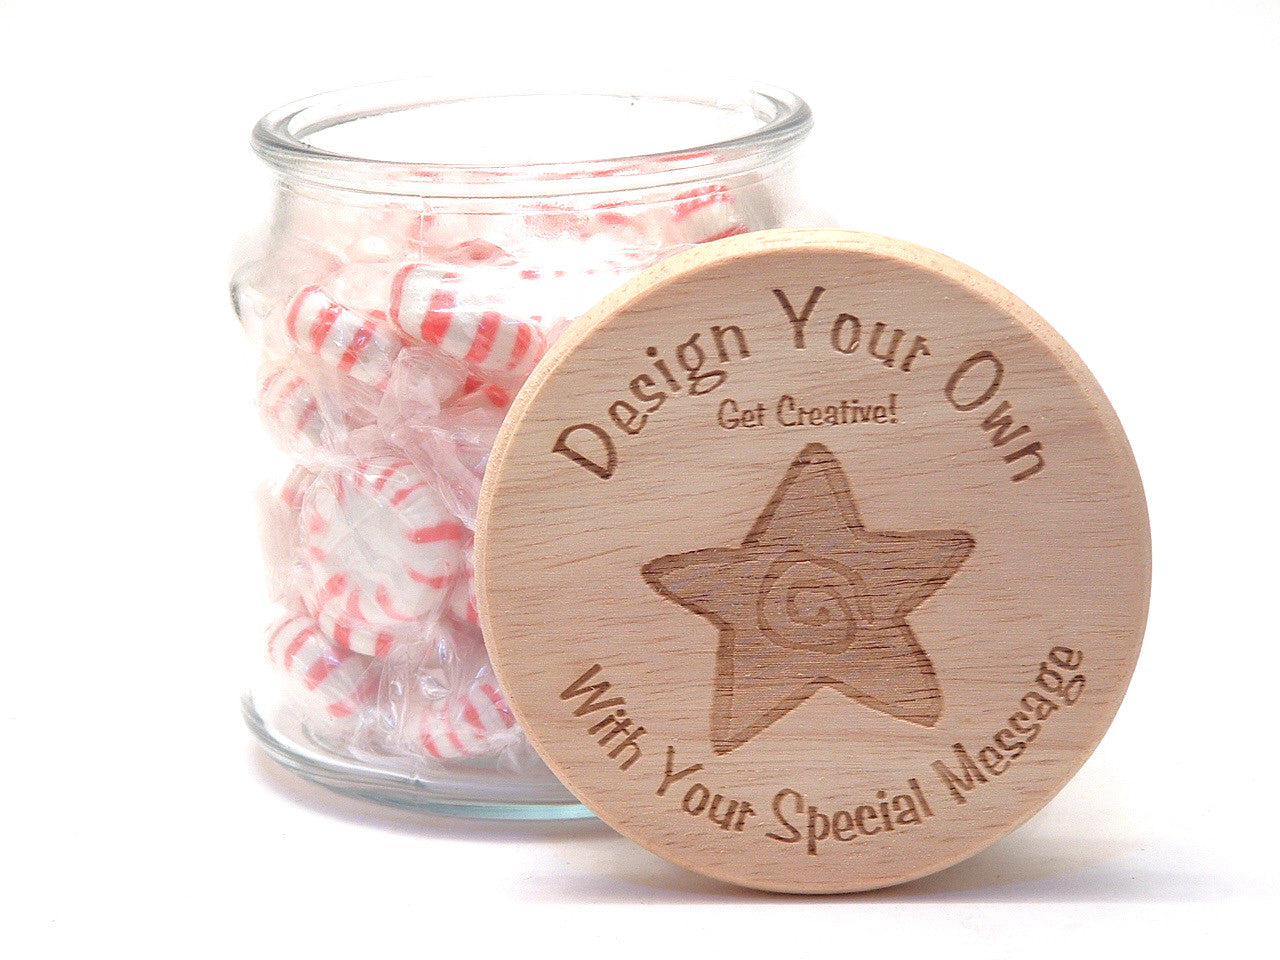 16oz Personalized Candy Jar Design Your Own Hat Creek Candle Co